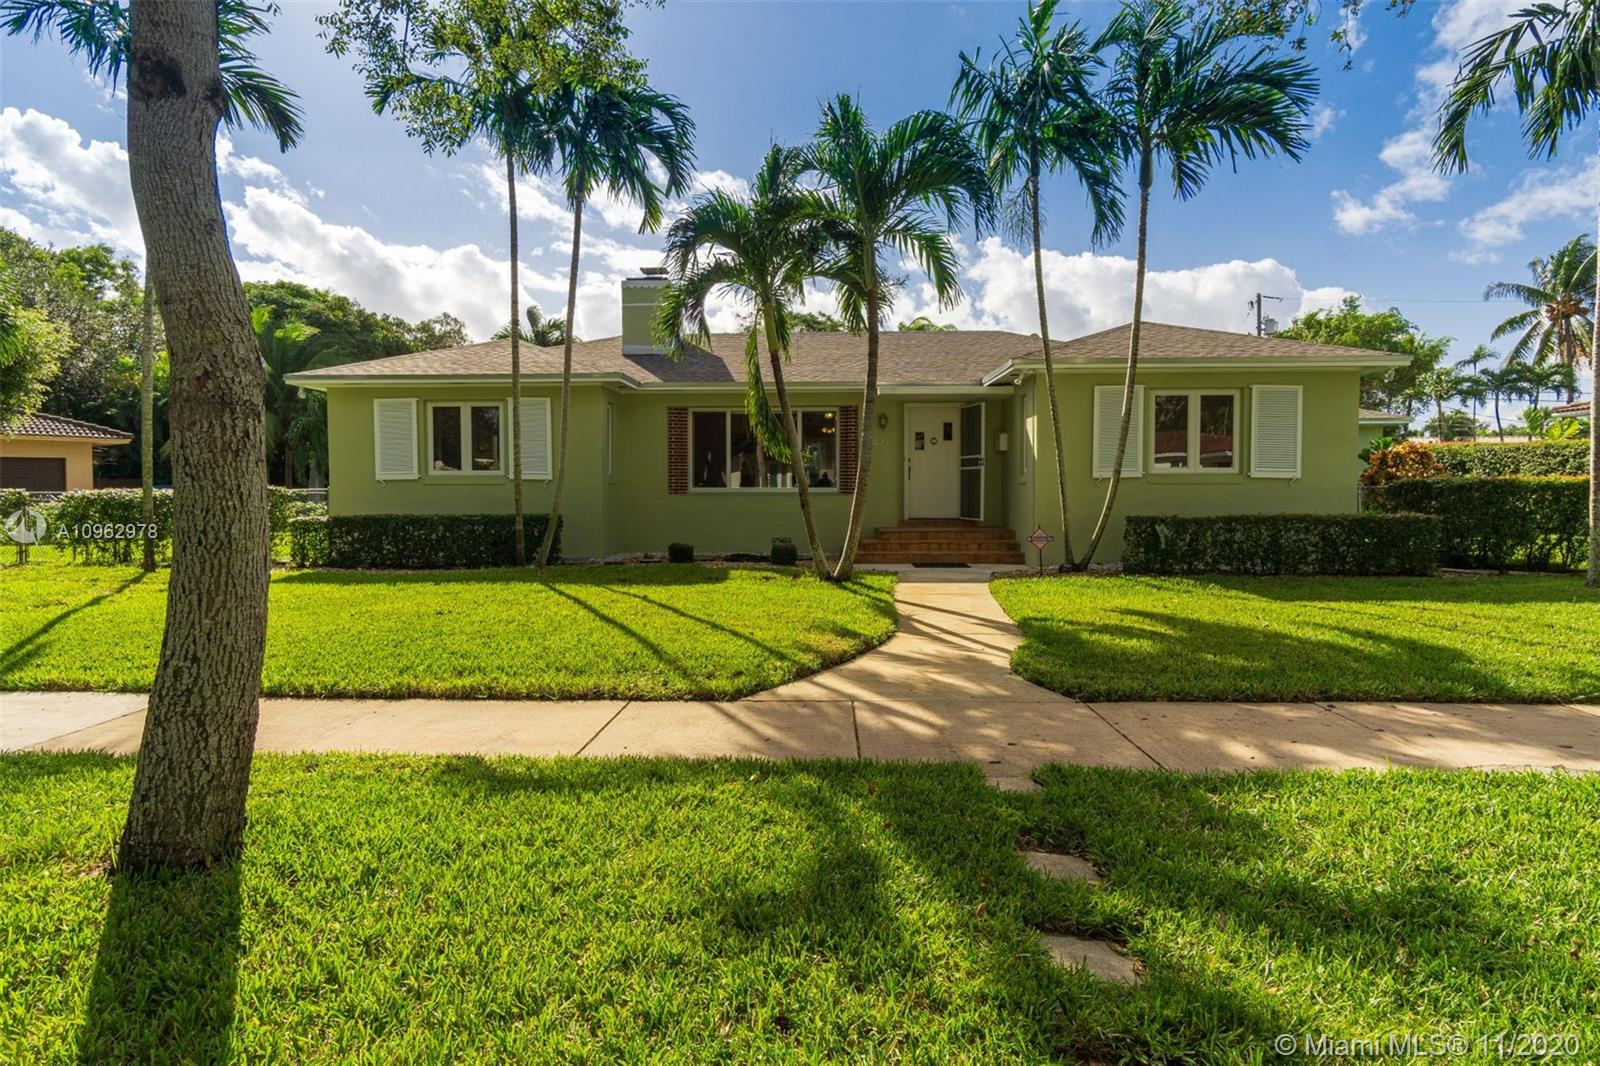 882 NE 97th St, Miami Shores, Florida 33138, 4 Bedrooms Bedrooms, ,3 BathroomsBathrooms,Residential,For Sale,882 NE 97th St,A10962978